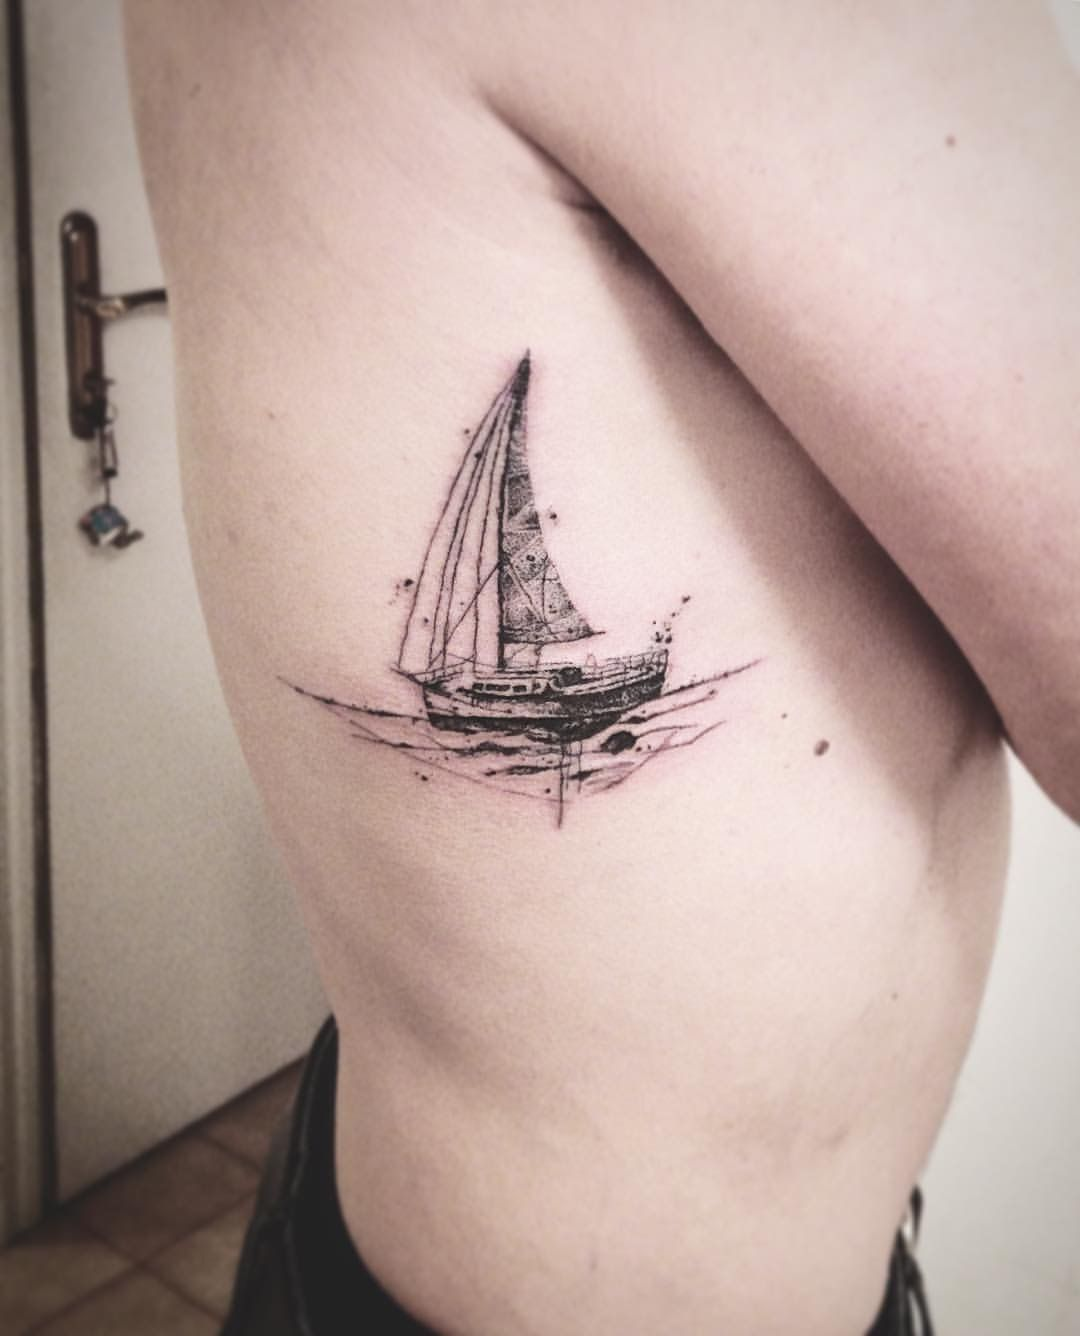 The pirate ship tattoo is one of the most unique and it is preferred by many people. Any lover of tattoos understands their flexibility in terms of design.